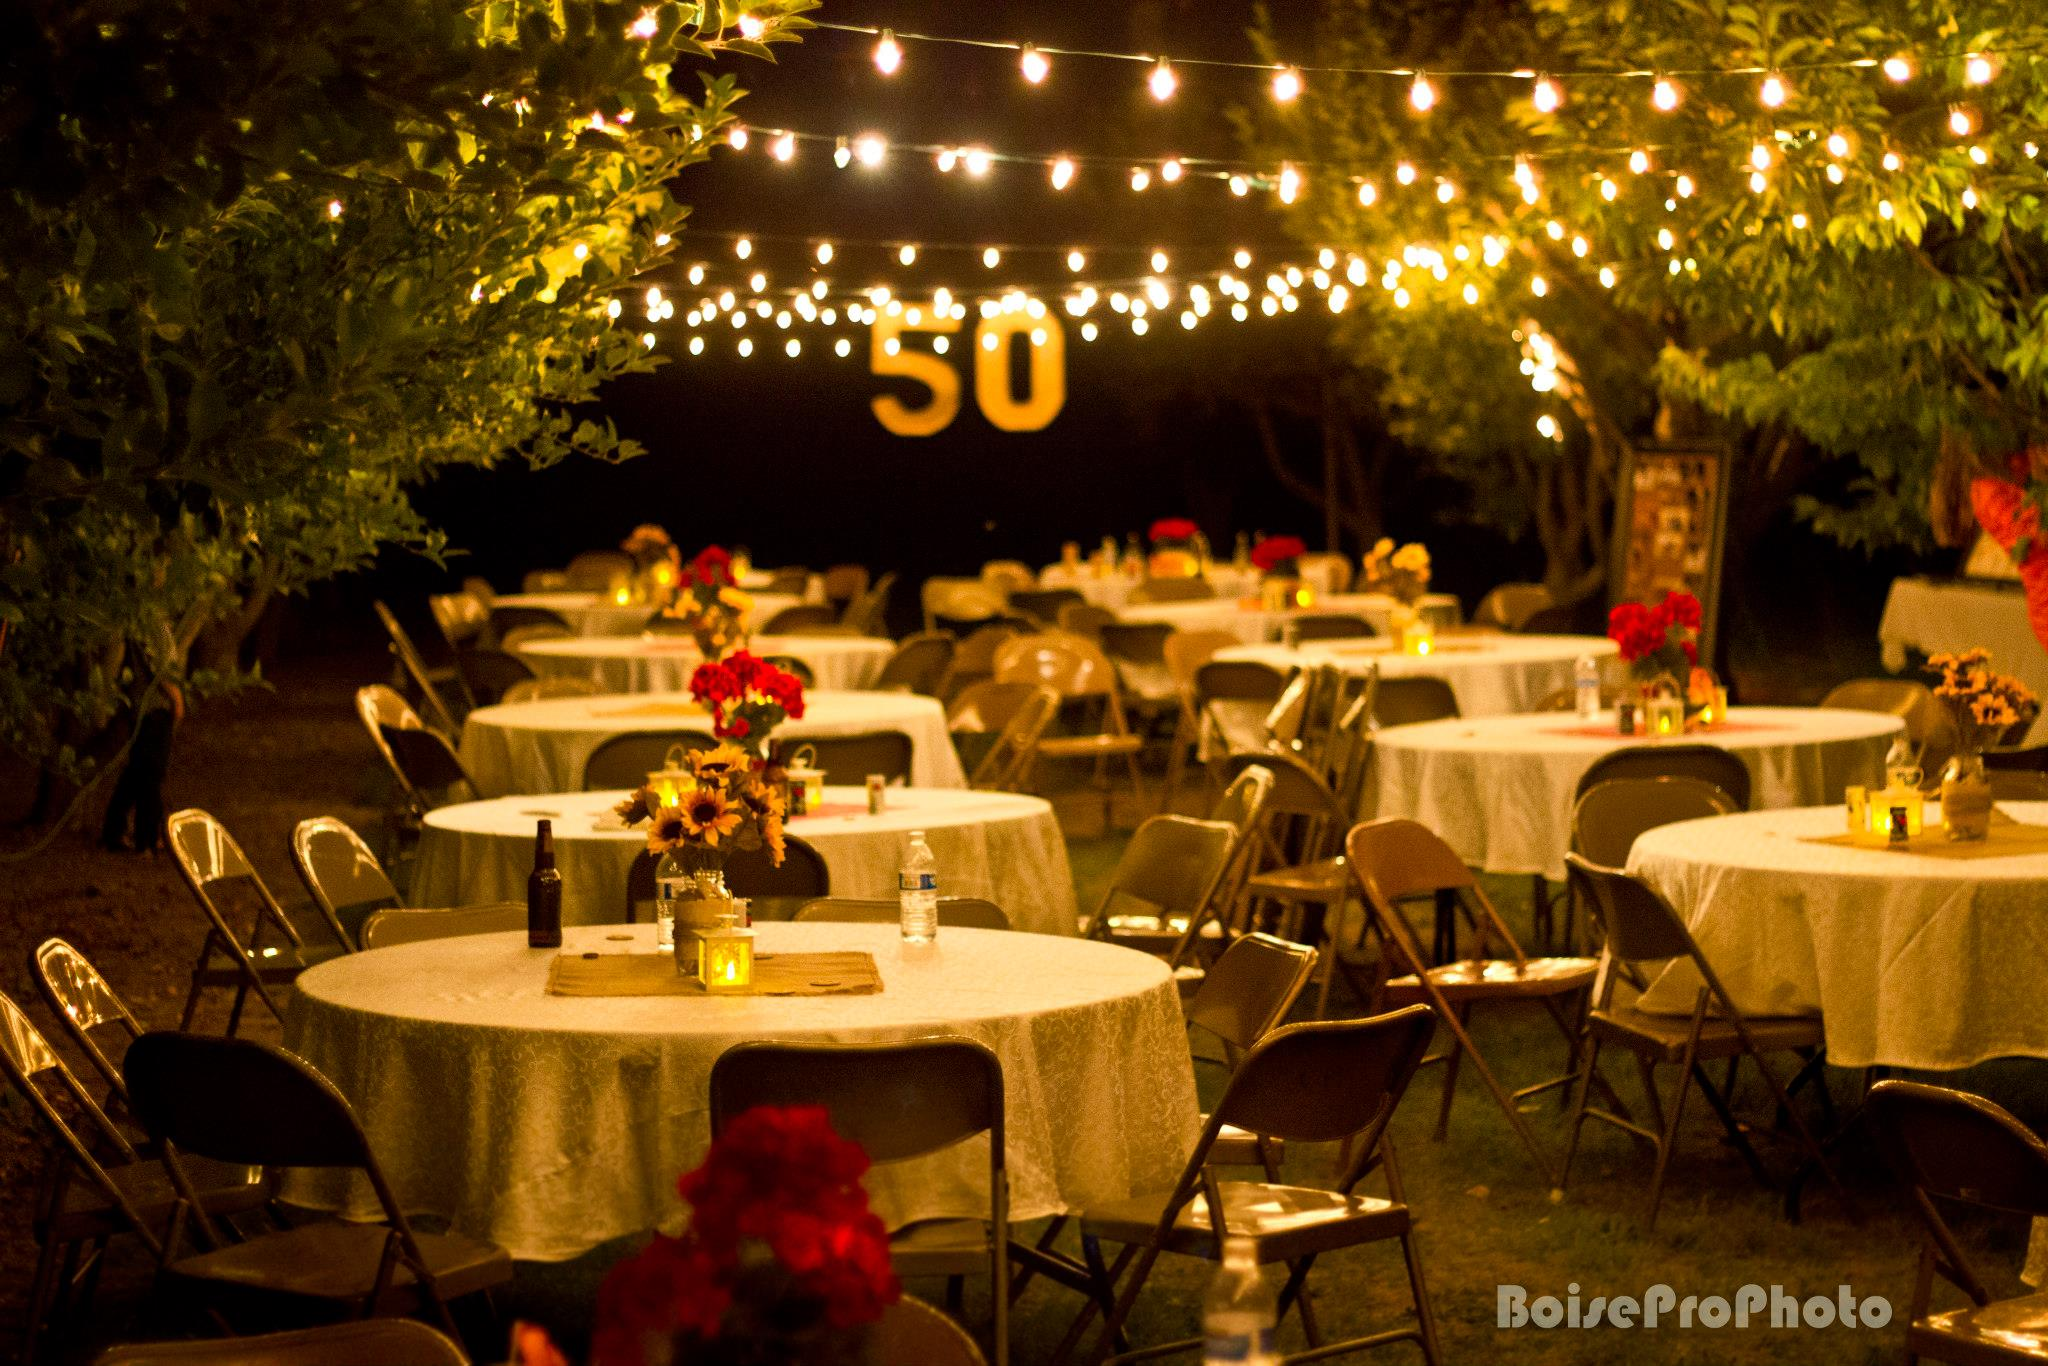 Diy 50th wedding anniversary party from salty bison for 50 wedding anniversary decoration ideas